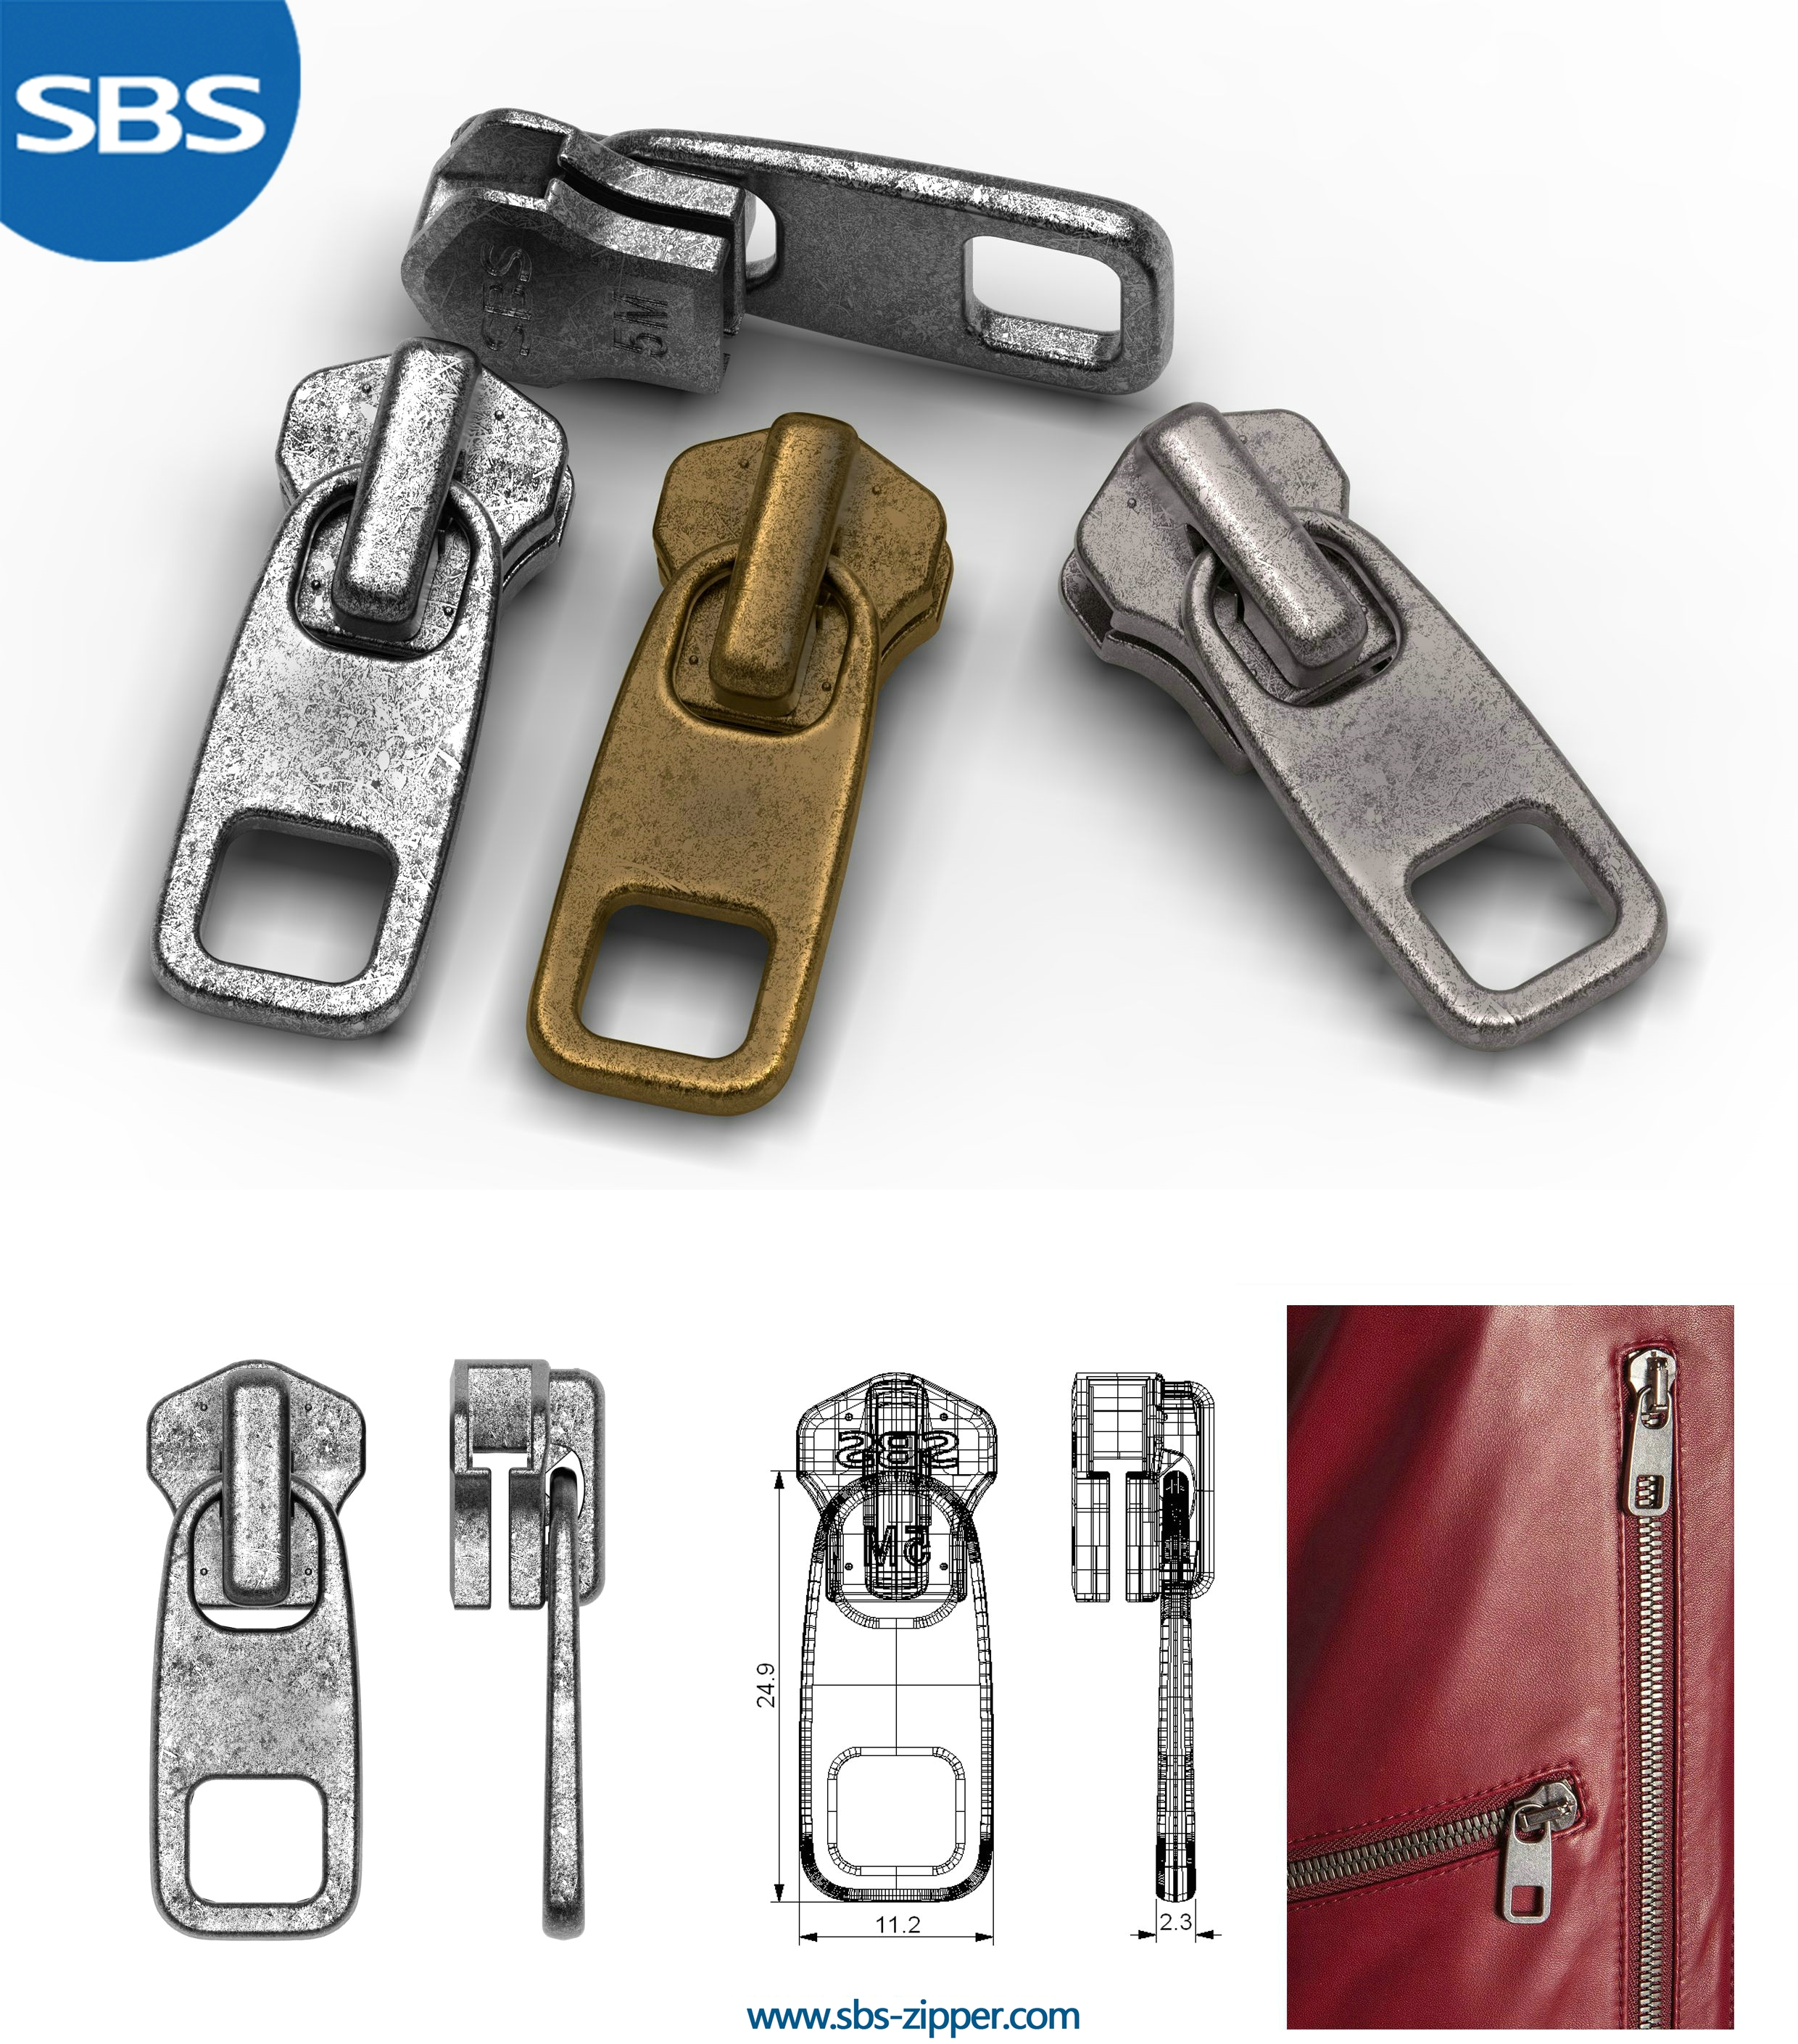 Heavy Duty Zipper Pulls Manufacturer 17SMC012 | SBS Zipper